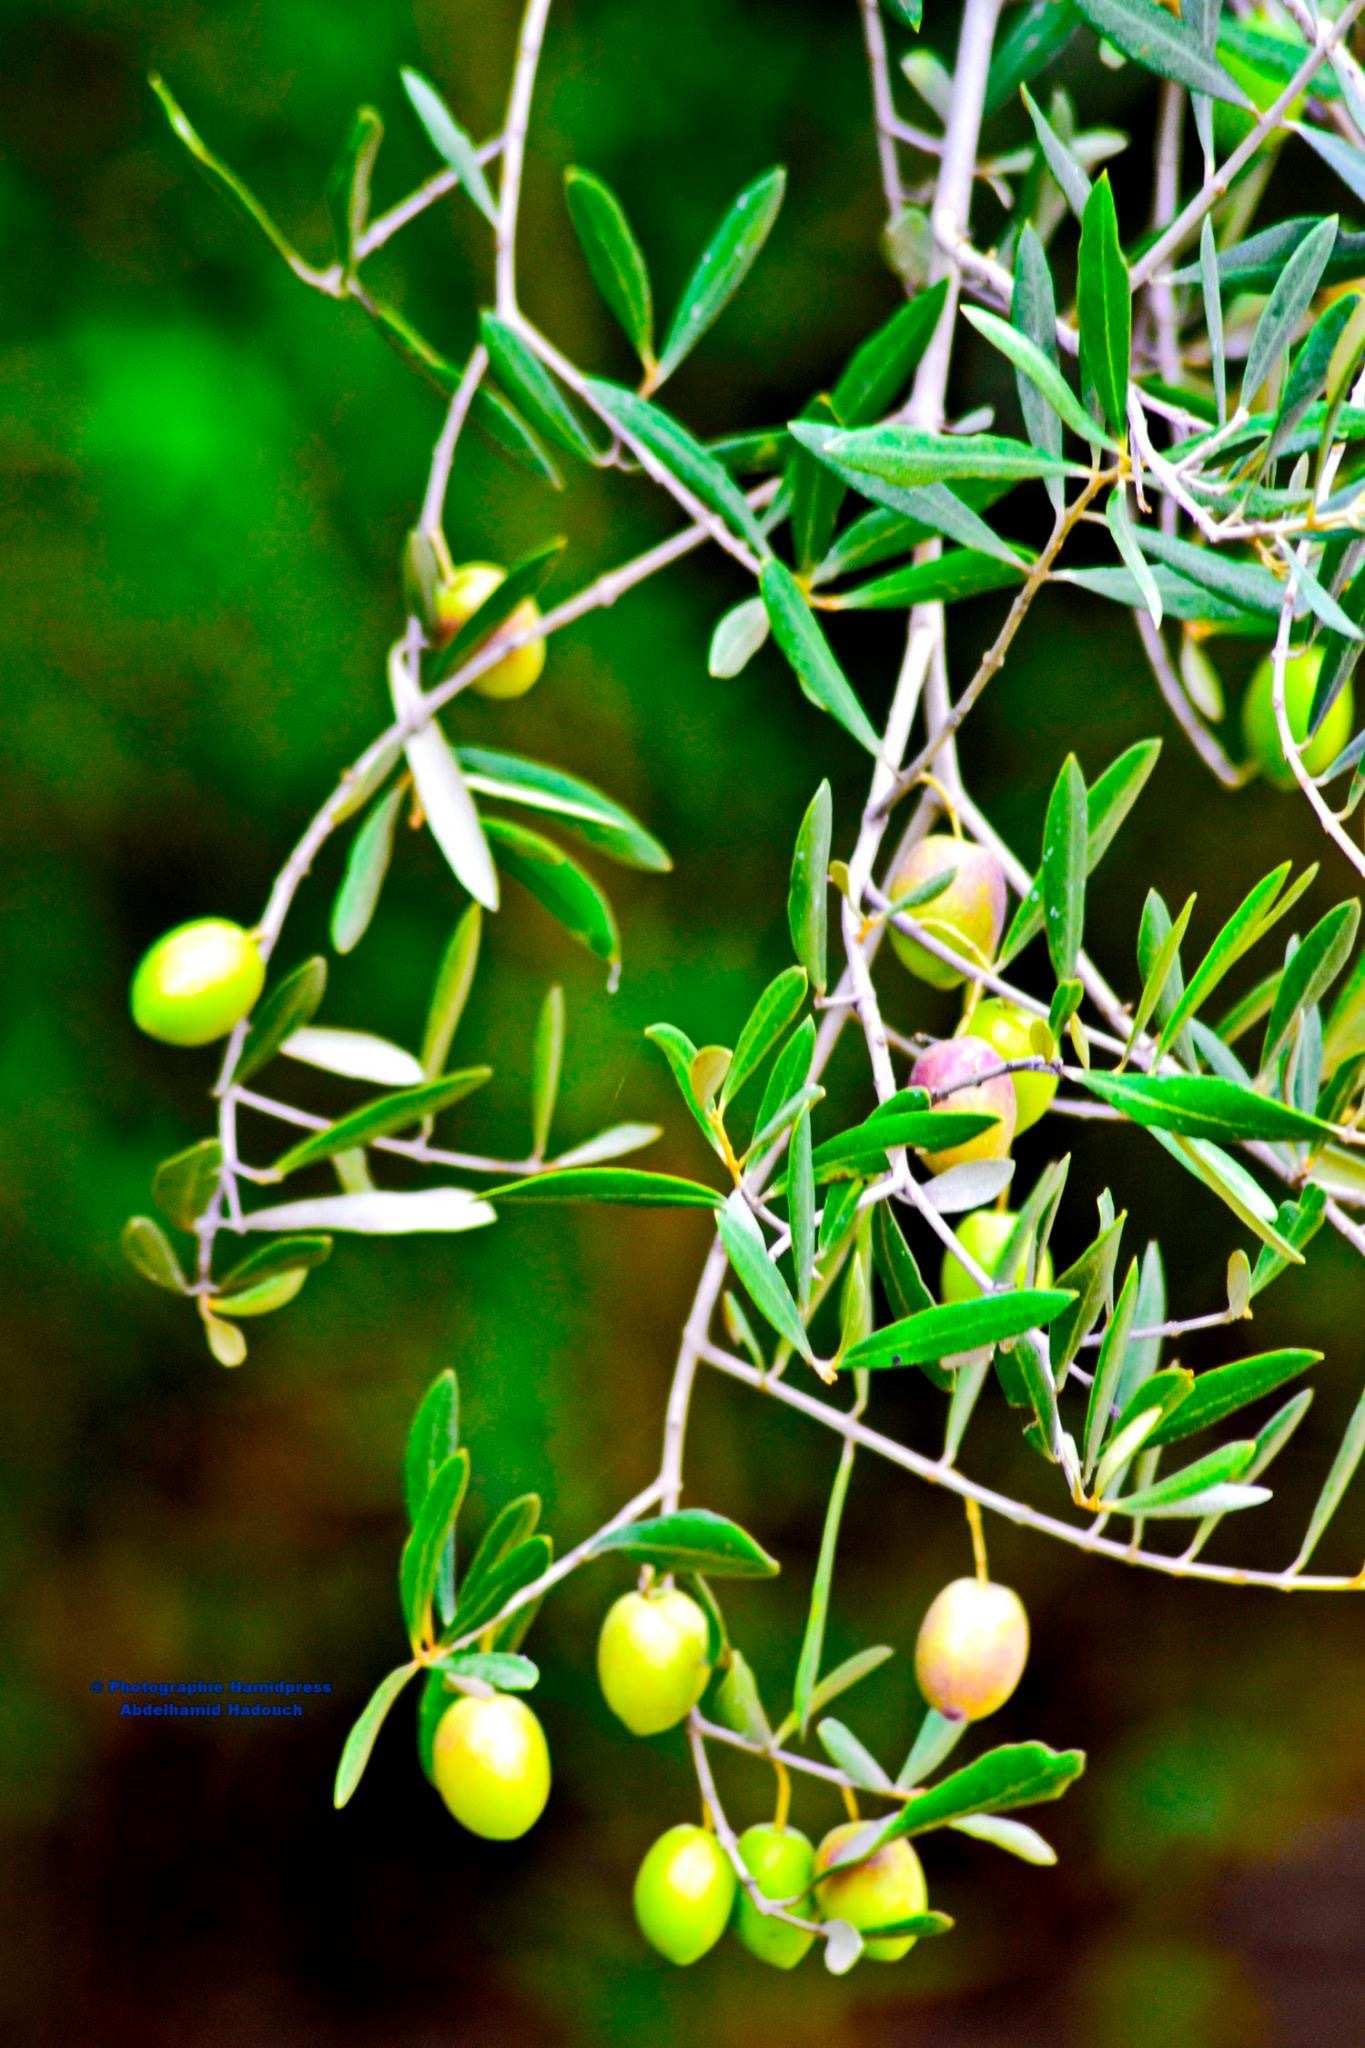 Les olives  by Abdelhamid Hadouch